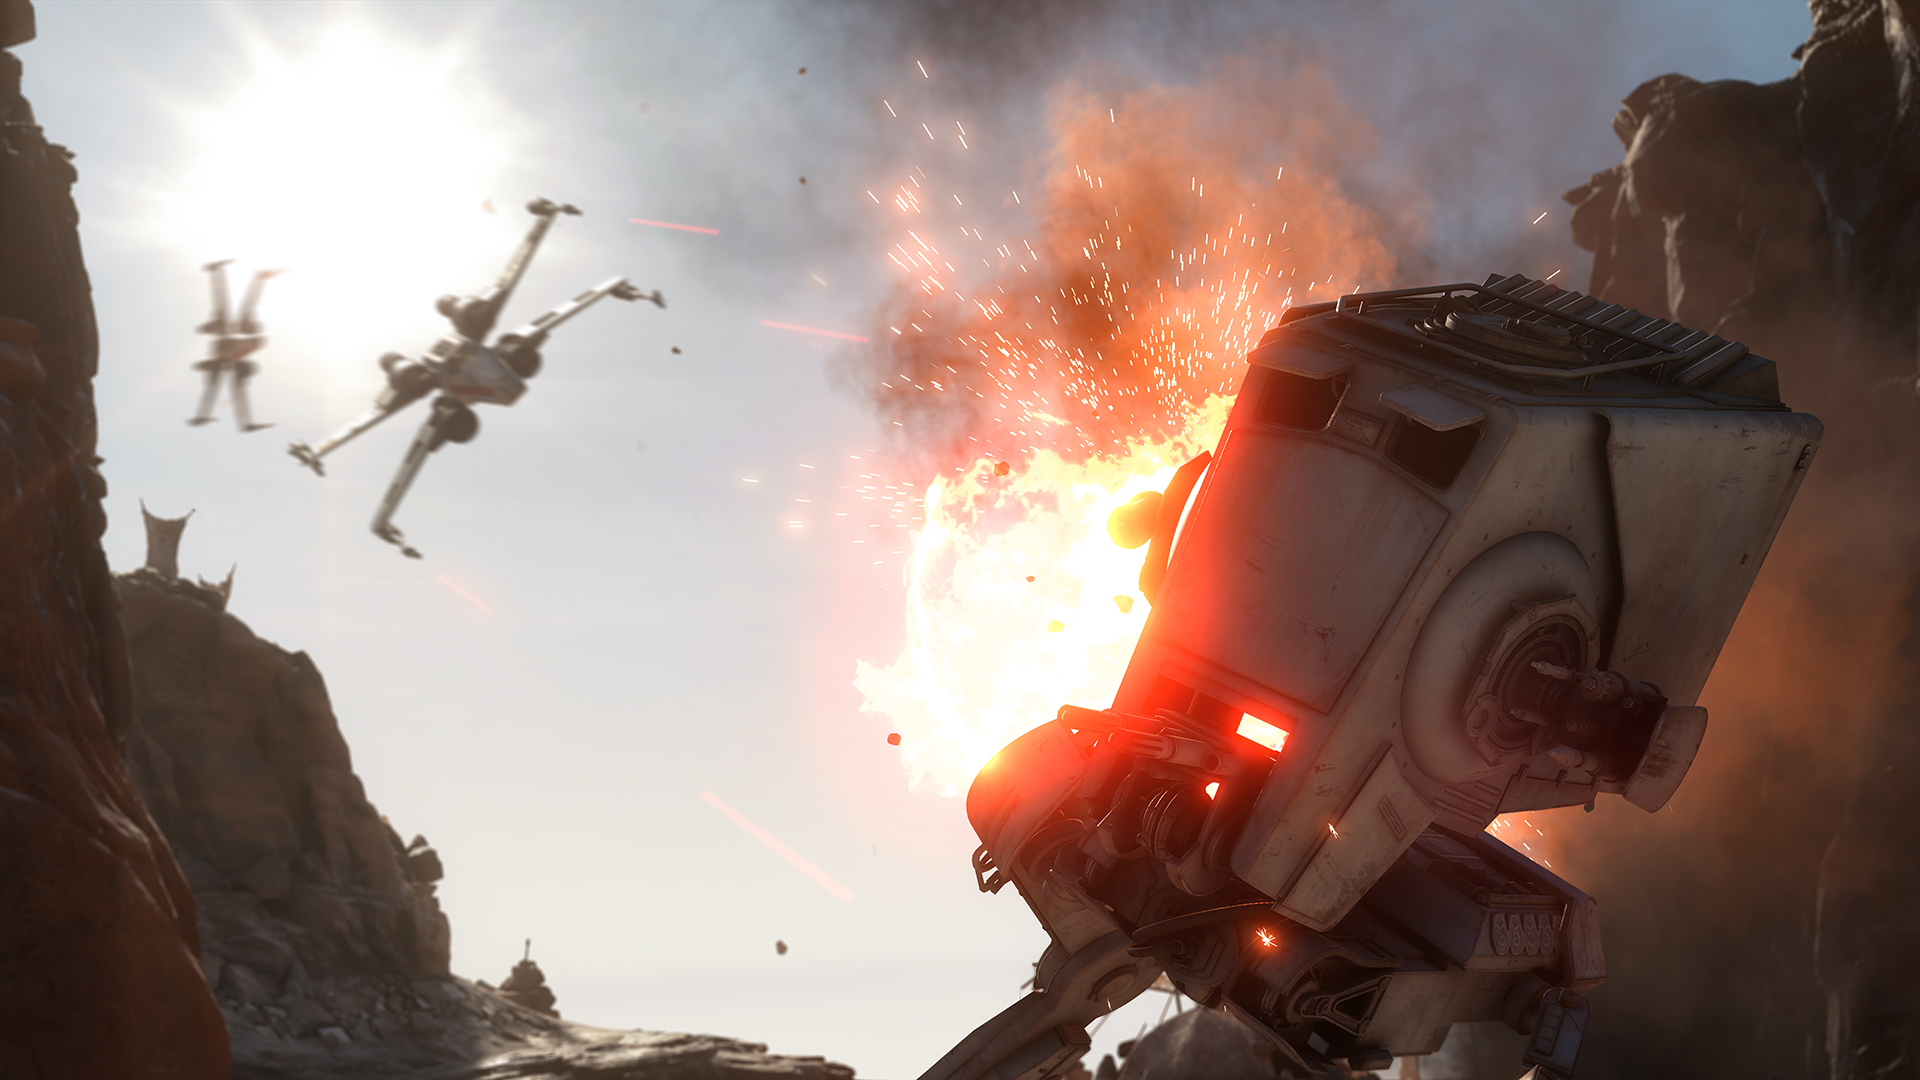 star-wars-battlefront-action-image